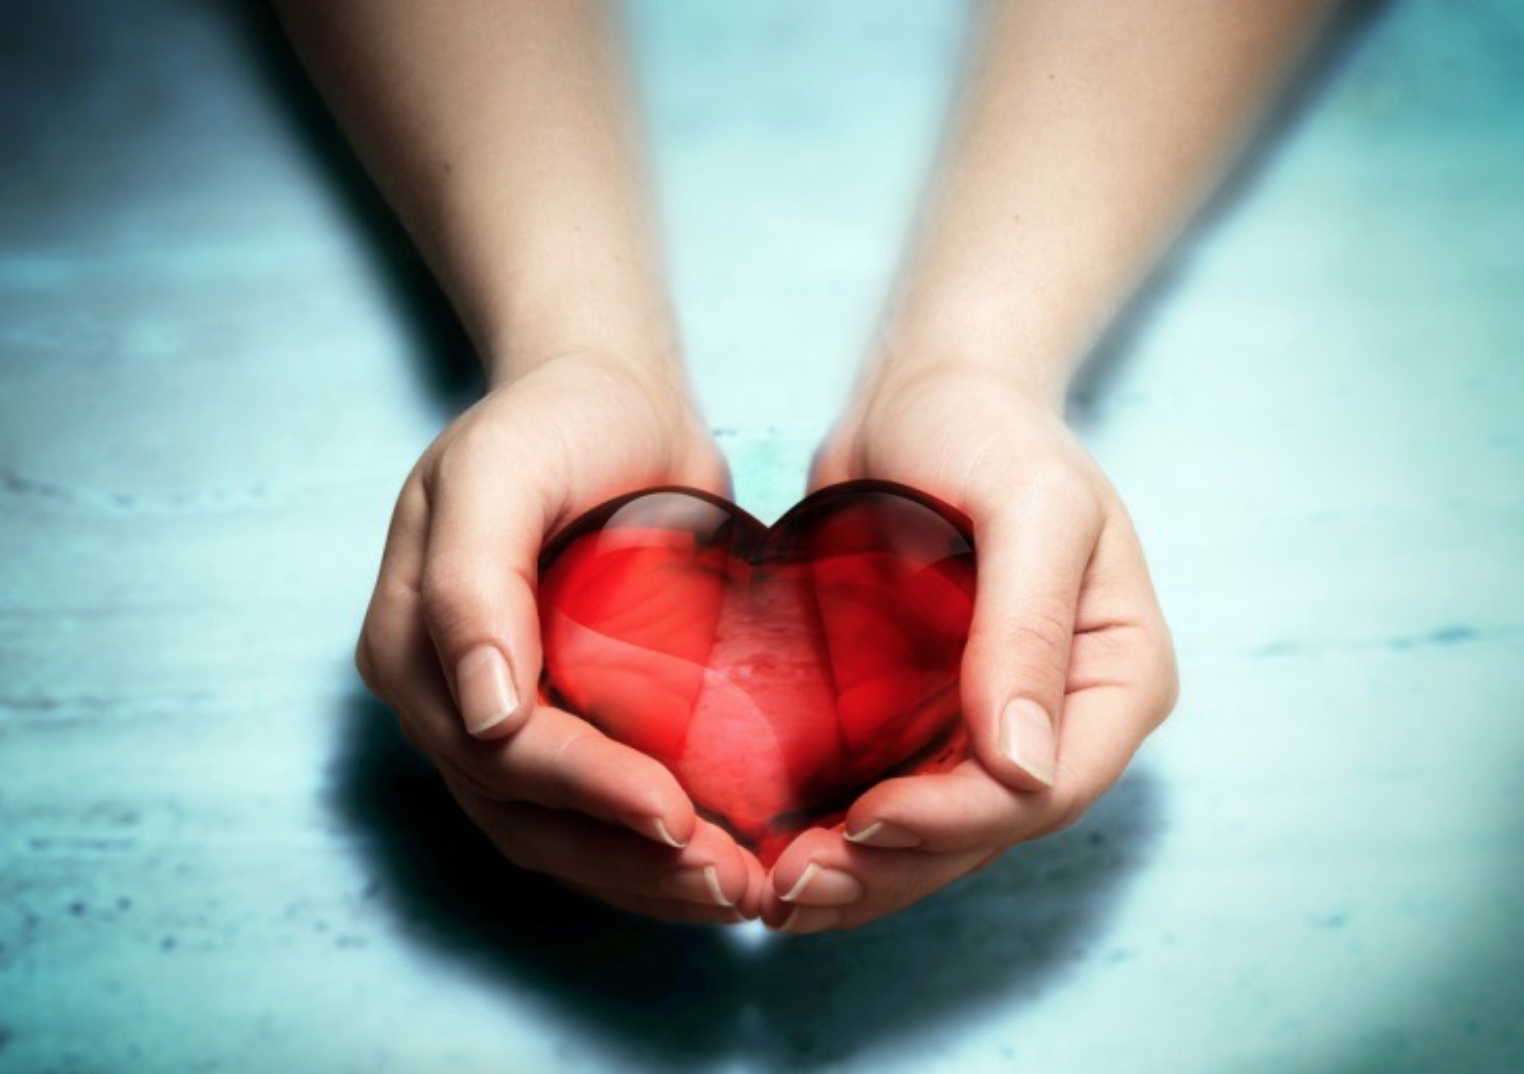 Healthy Heart, Happy Life: Facts About Heart Disease in Women